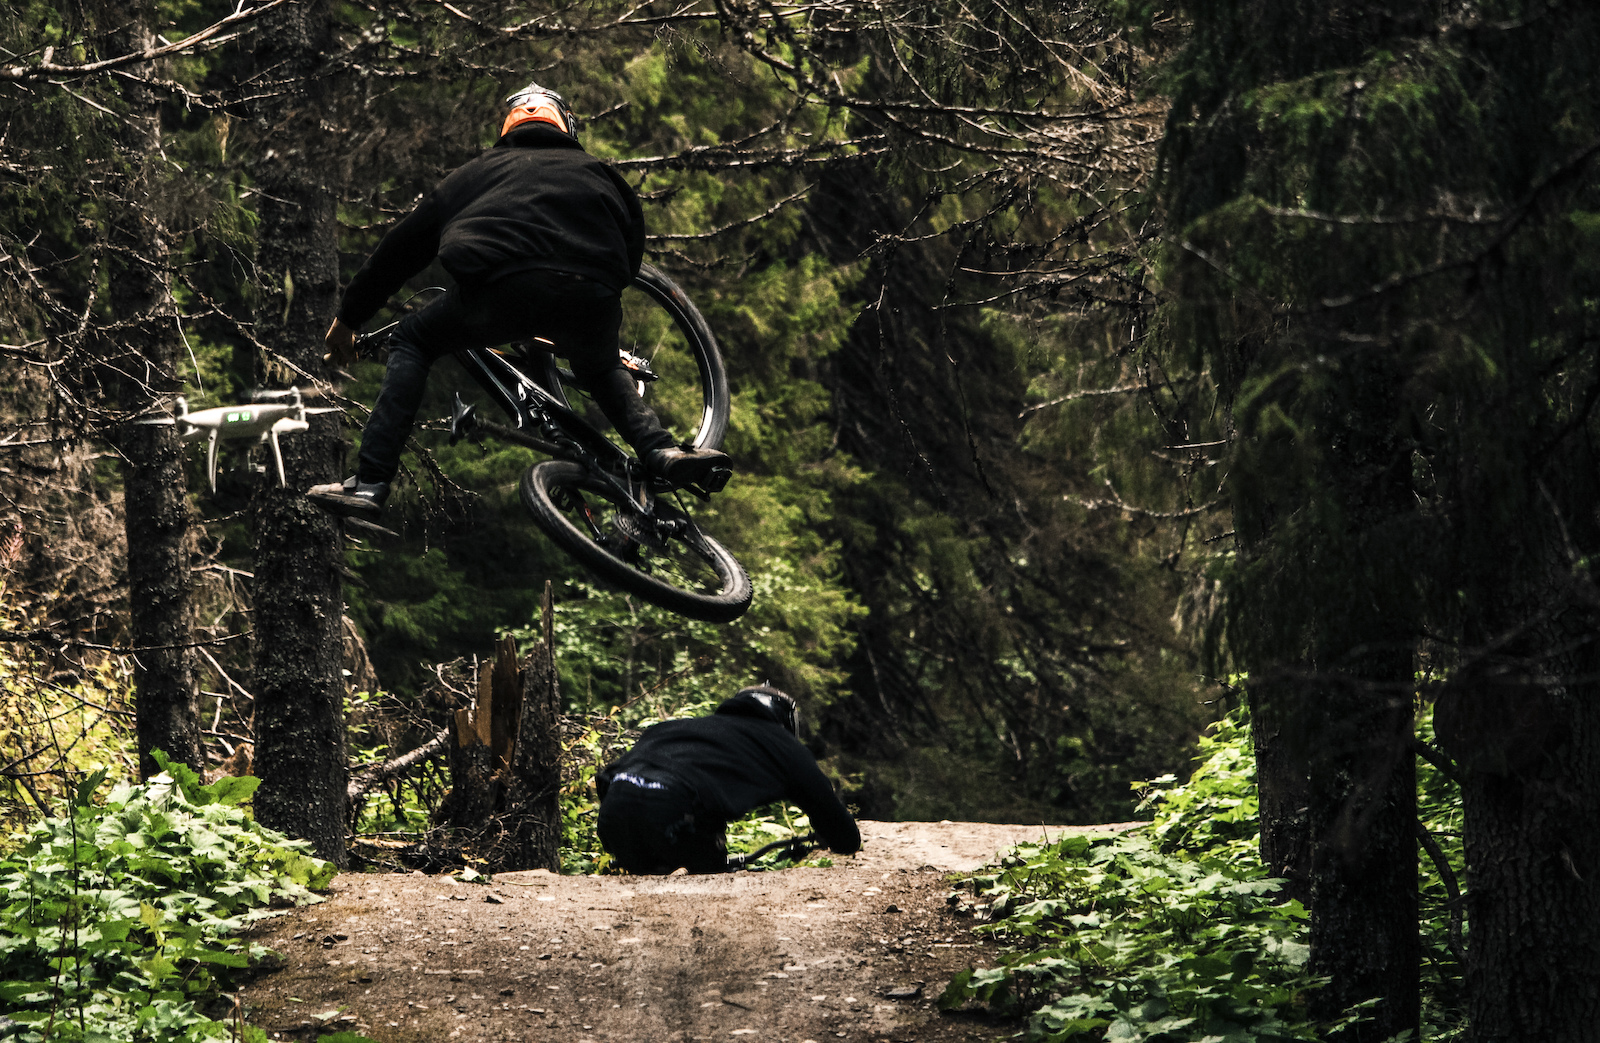 Shots from filming Sequence01. Photo Carl-Fredrik Andersson